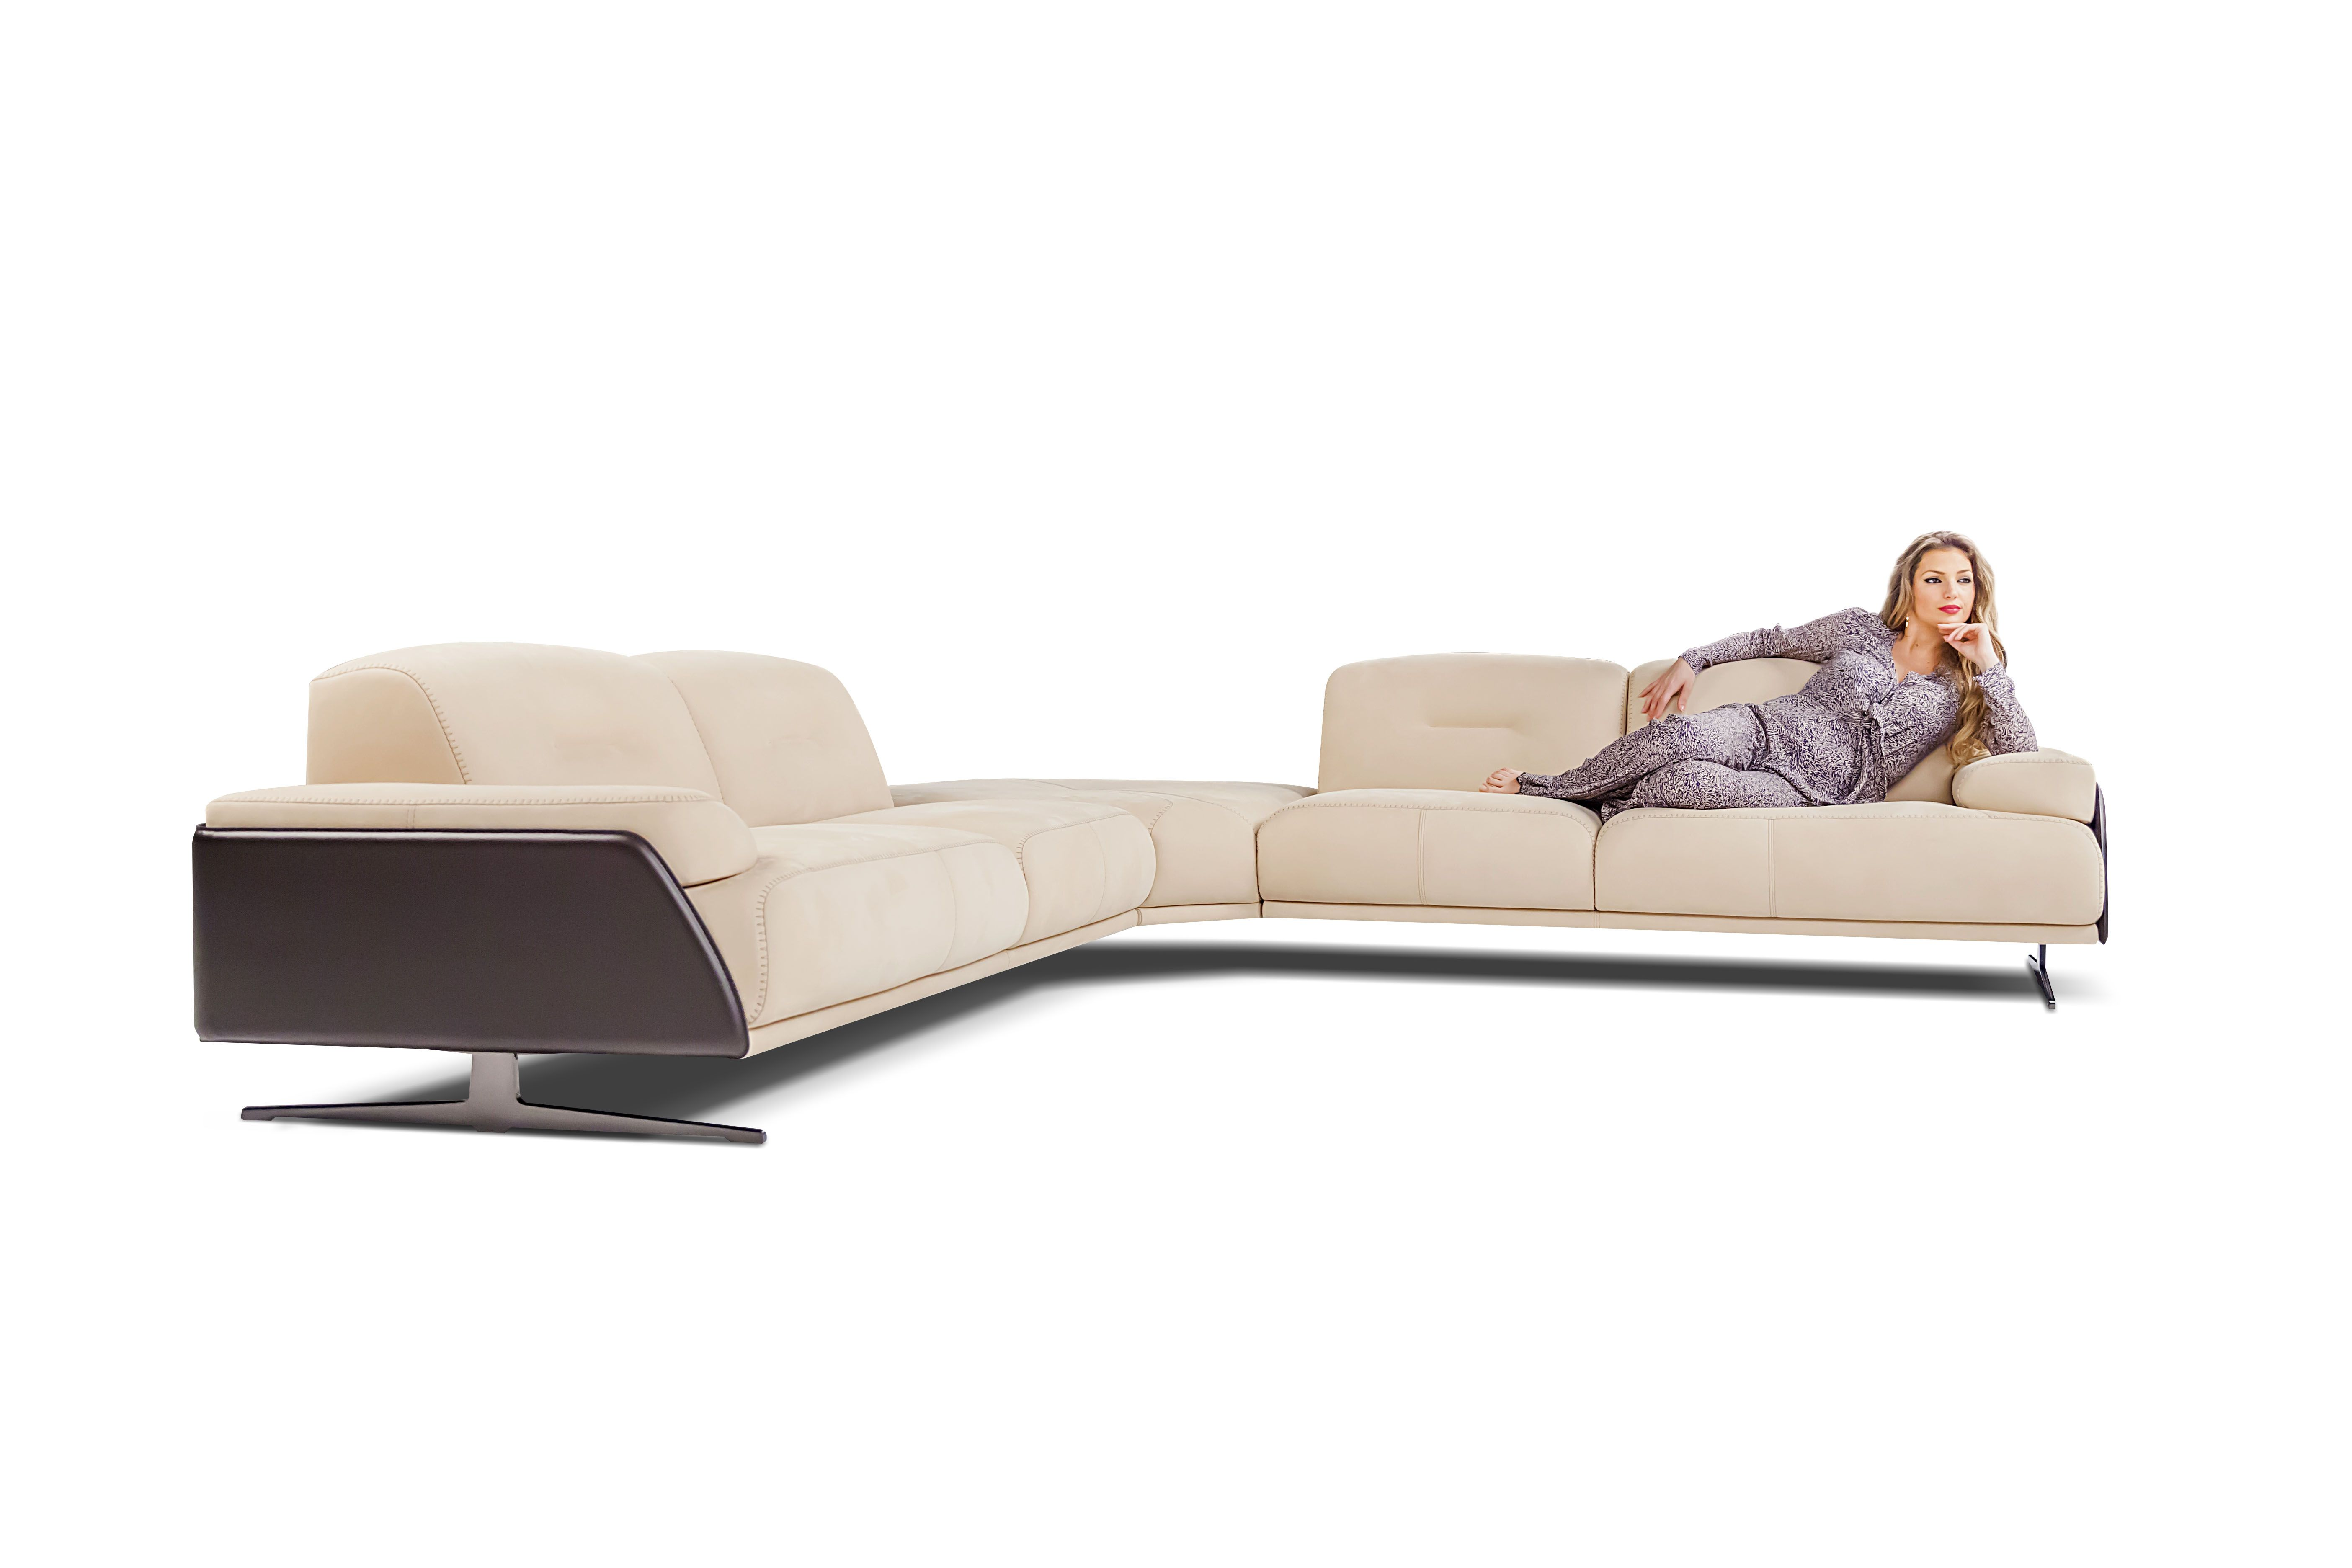 Outstanding Elevate Your Interiors With Illusion Sofa A Luxury Download Free Architecture Designs Scobabritishbridgeorg